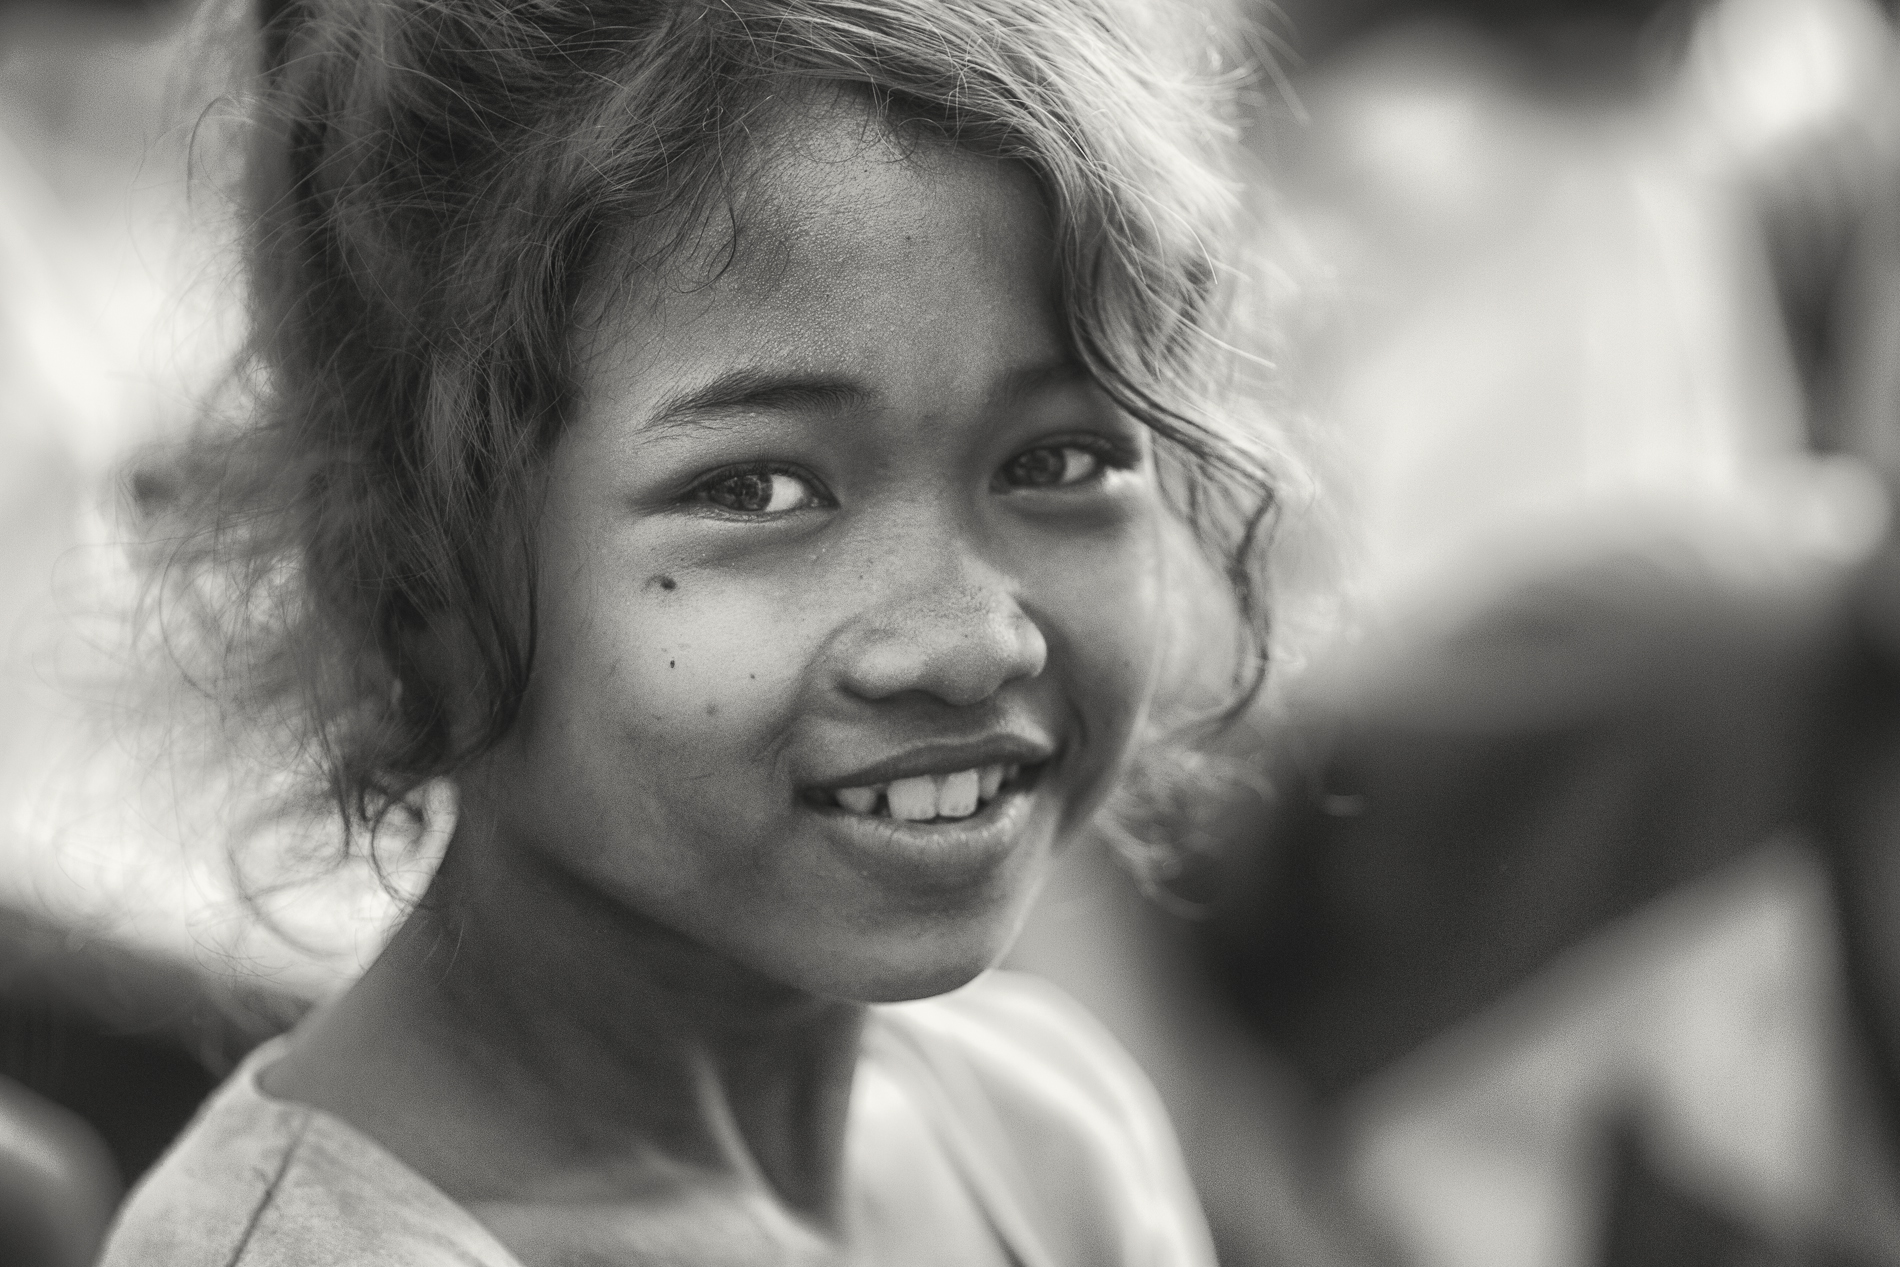 faces pretty quotes beauty cambodia cambodian audrey 2nd hepburn result